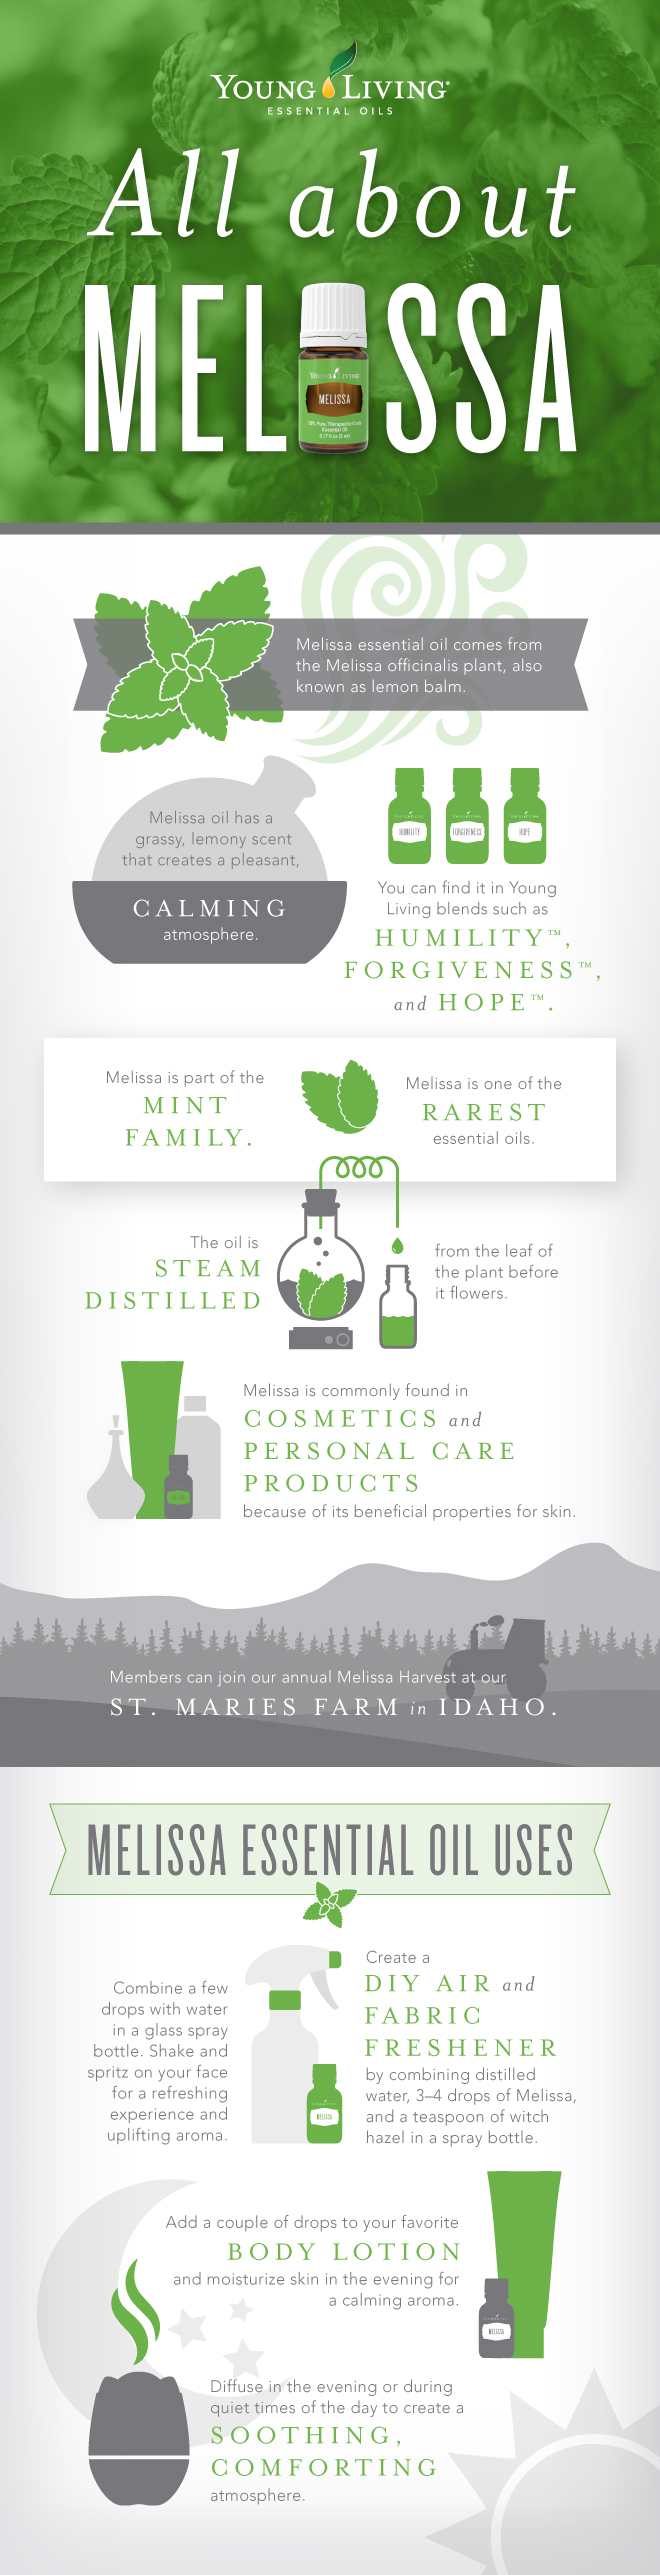 blog-All-About-Melissa-_Infographic_US_JeS_0517-1.jpg